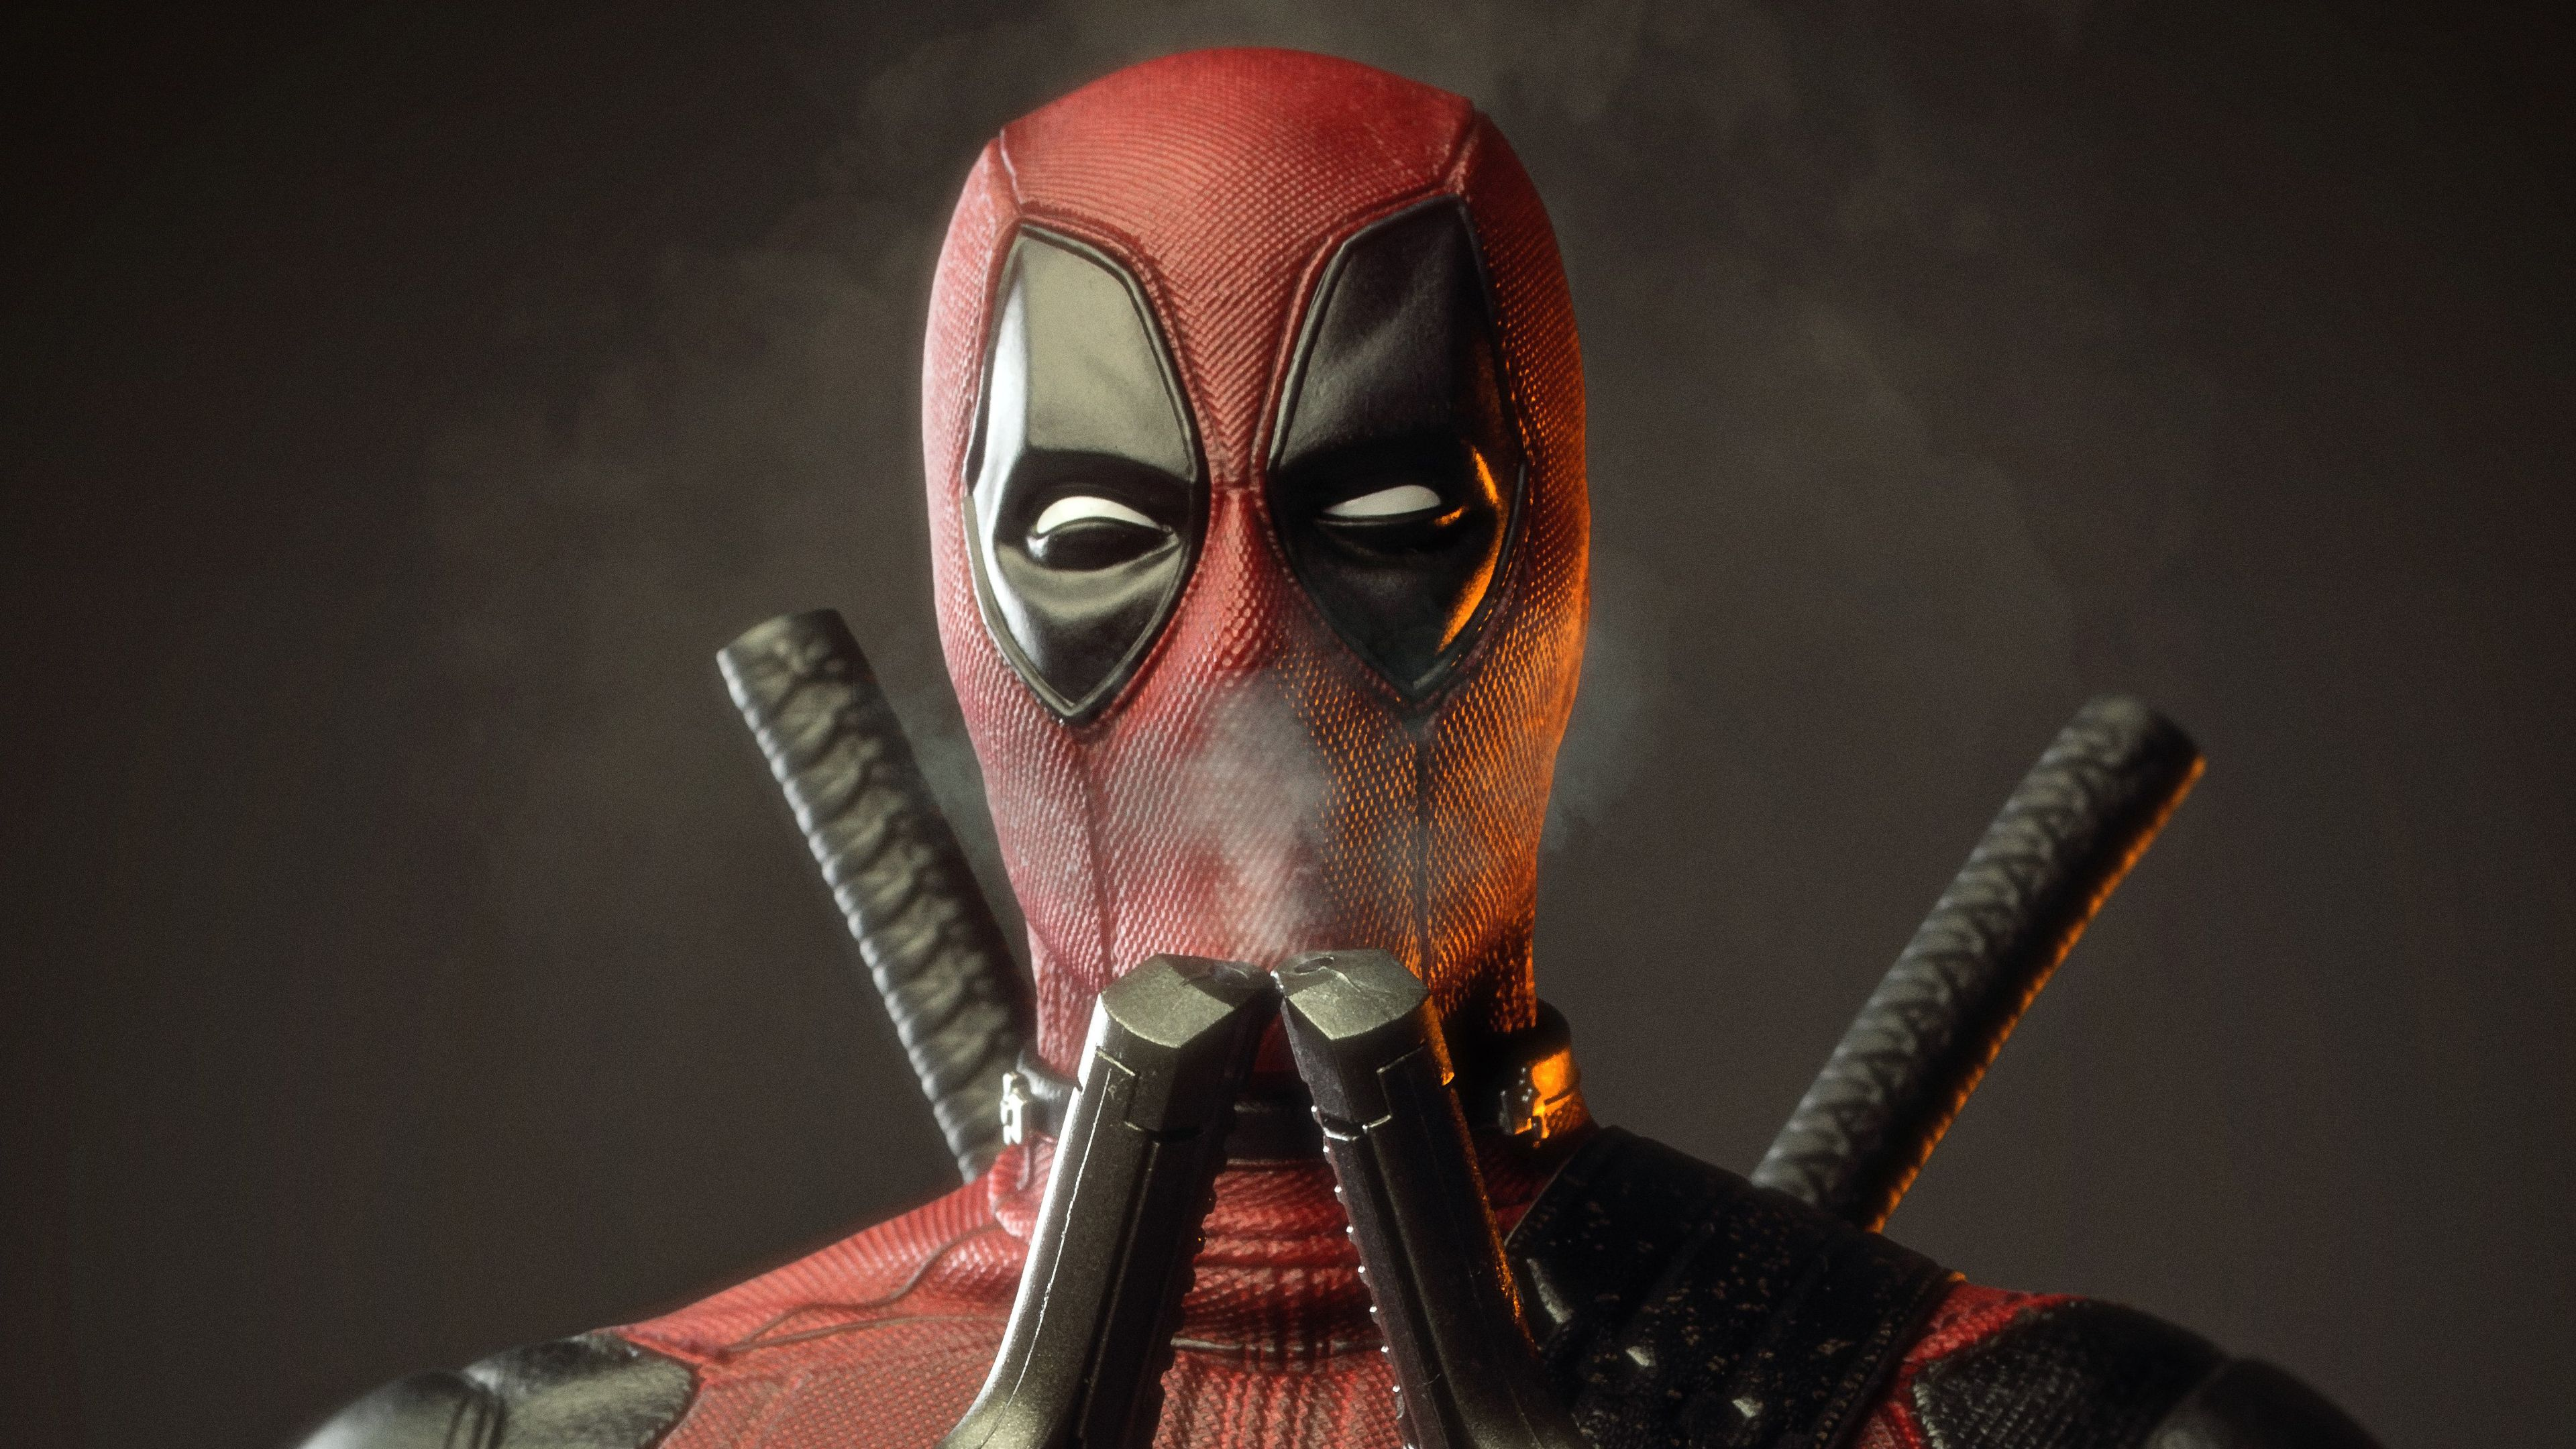 Deadpool Smelling Smoke Of Two Guns 4k Superheroes Wallpapers Hd Wallpapers Digital Art Wal Deadpool Wallpaper Deadpool Hd Wallpaper Deadpool Wallpaper Funny